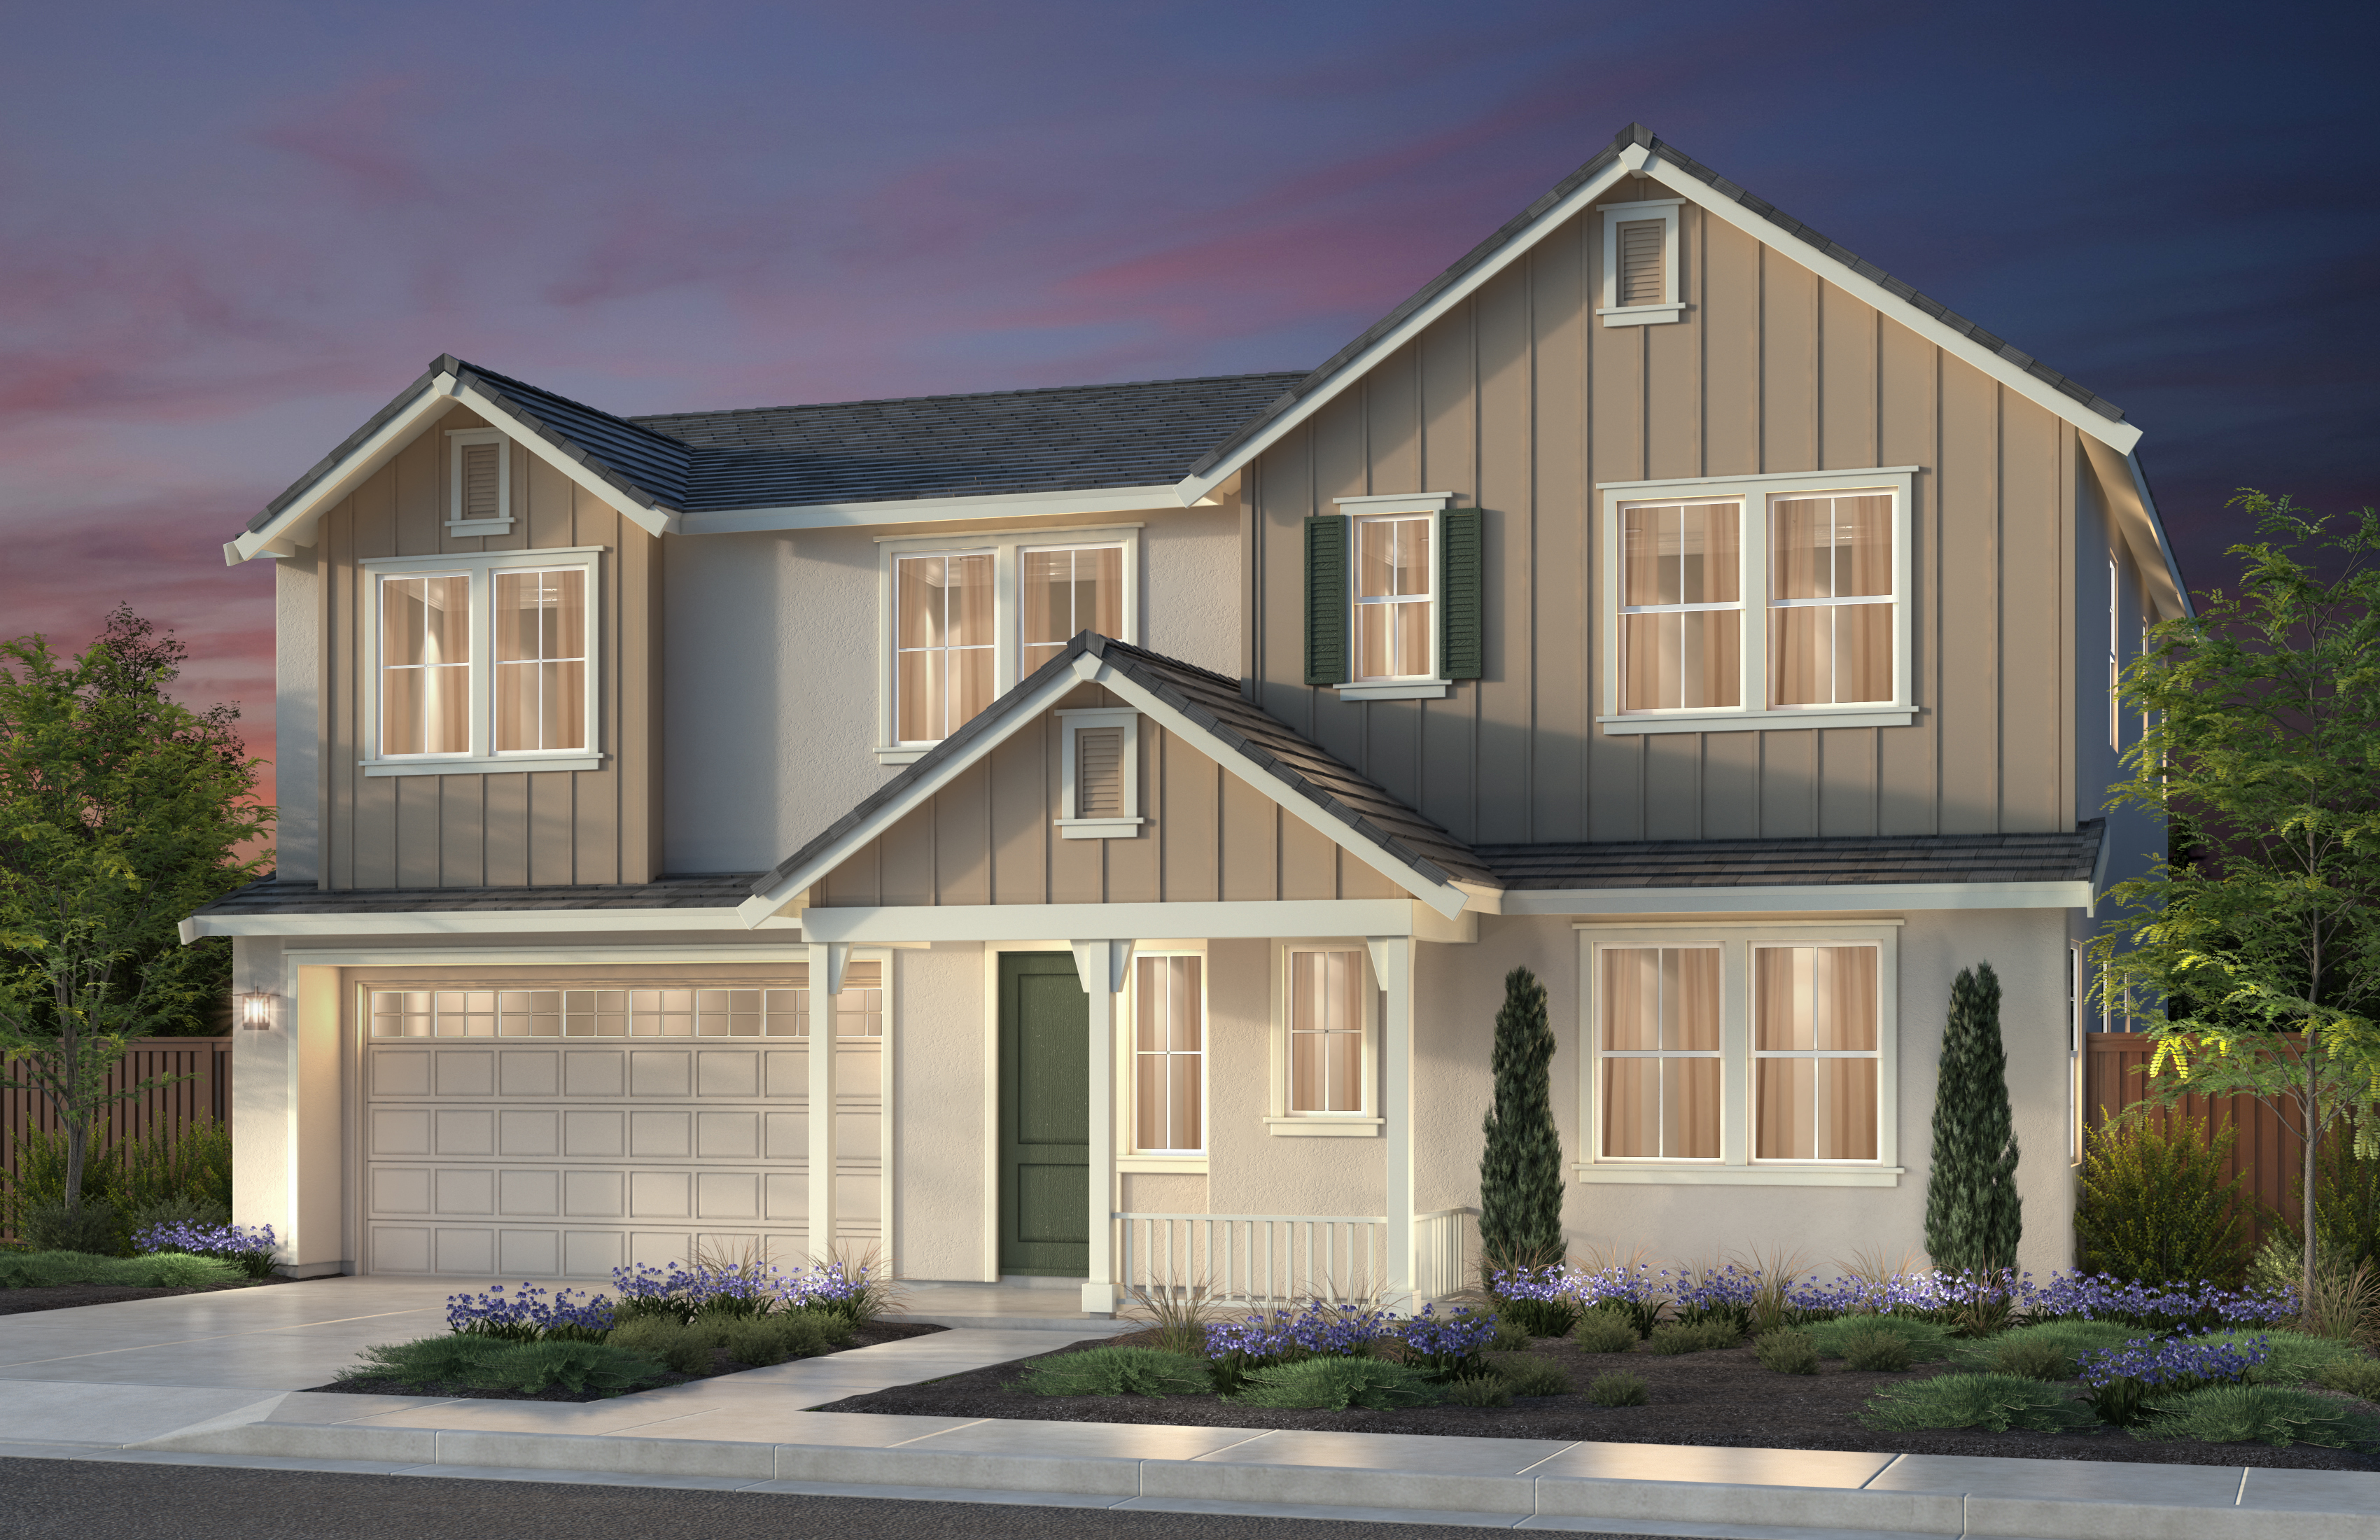 Kb Home Announces The Grand Opening Of Primrose And Rosebriar At